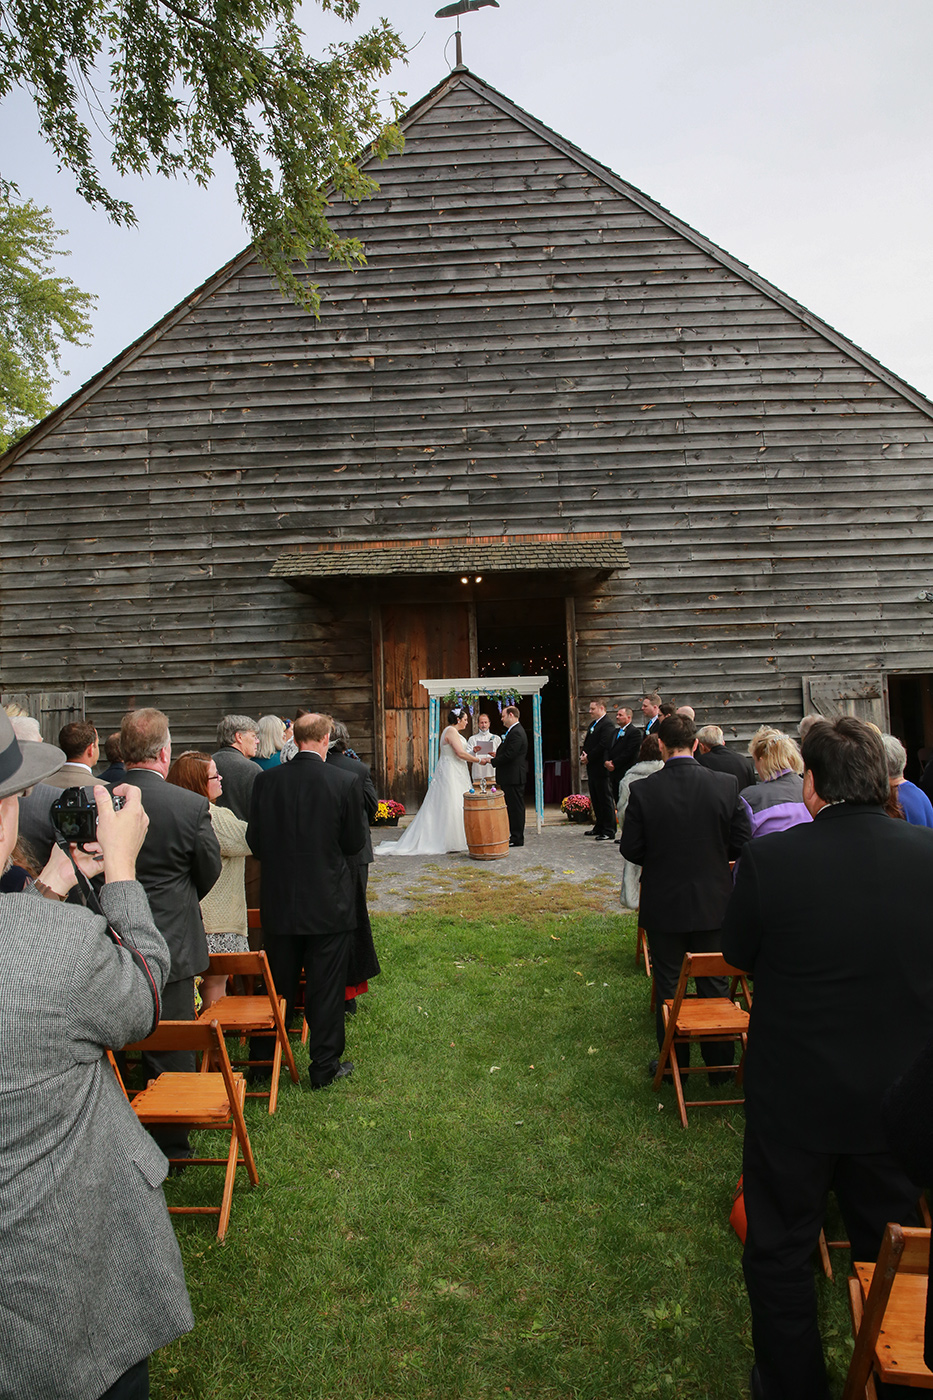 Aperture Photography at a Hudson Valley Barn wedding